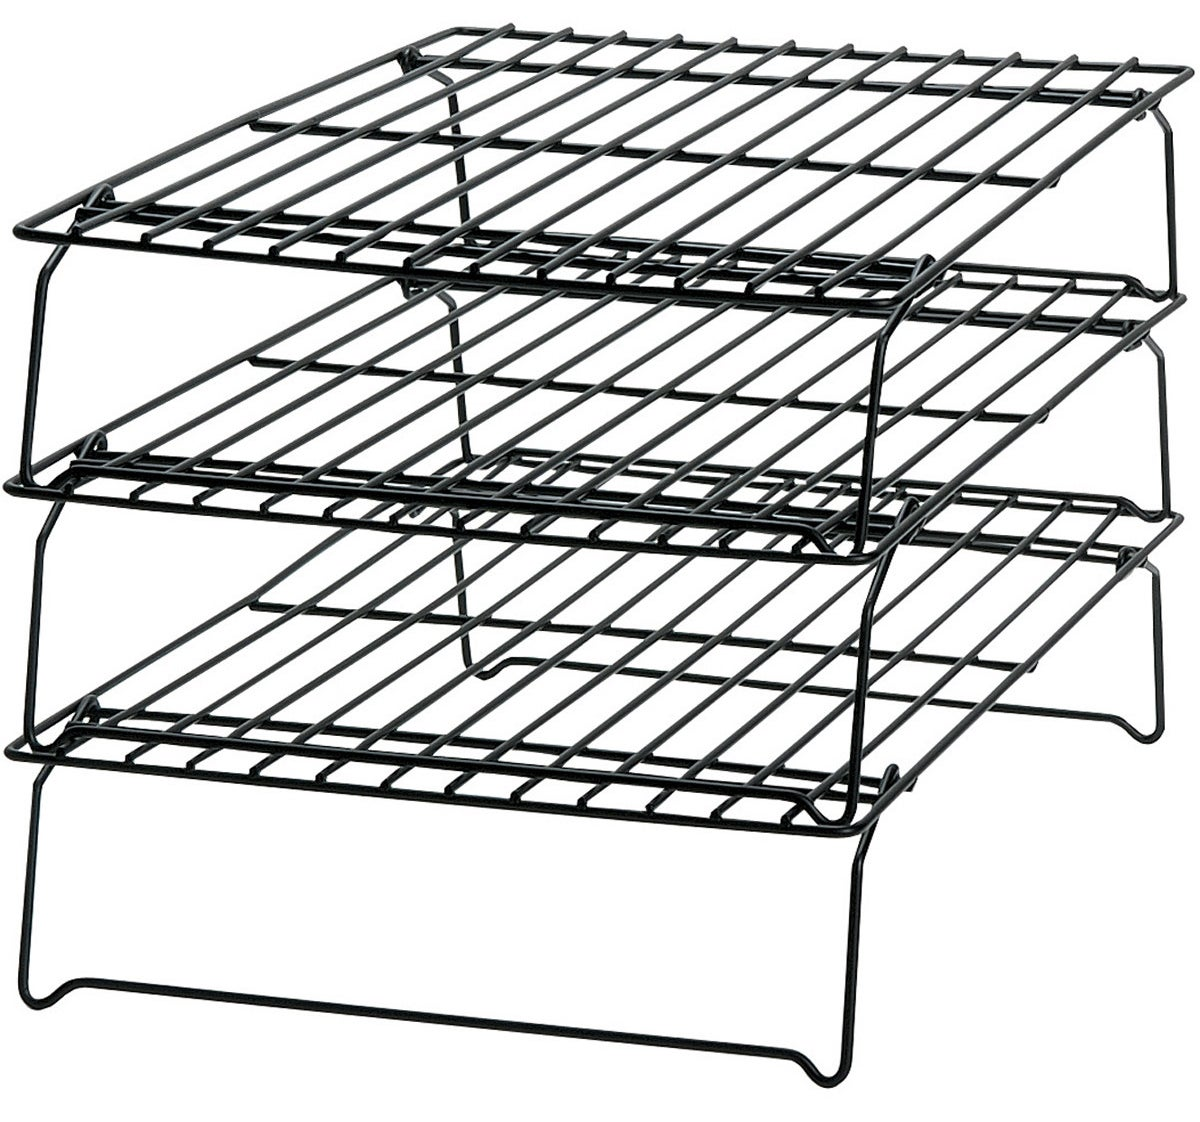 """Promising review: """"I received this set as a gift, and I'm very pleased with it. I love to bake big batches of cookies, but have limited counter space for cooling. This stacking rack does the job very well. It has also served the same purpose for craft projects, when painted or glued items need some flat drying time."""" —MzMeyerGet it from Walmart for $10.47 (originally $15.96)."""